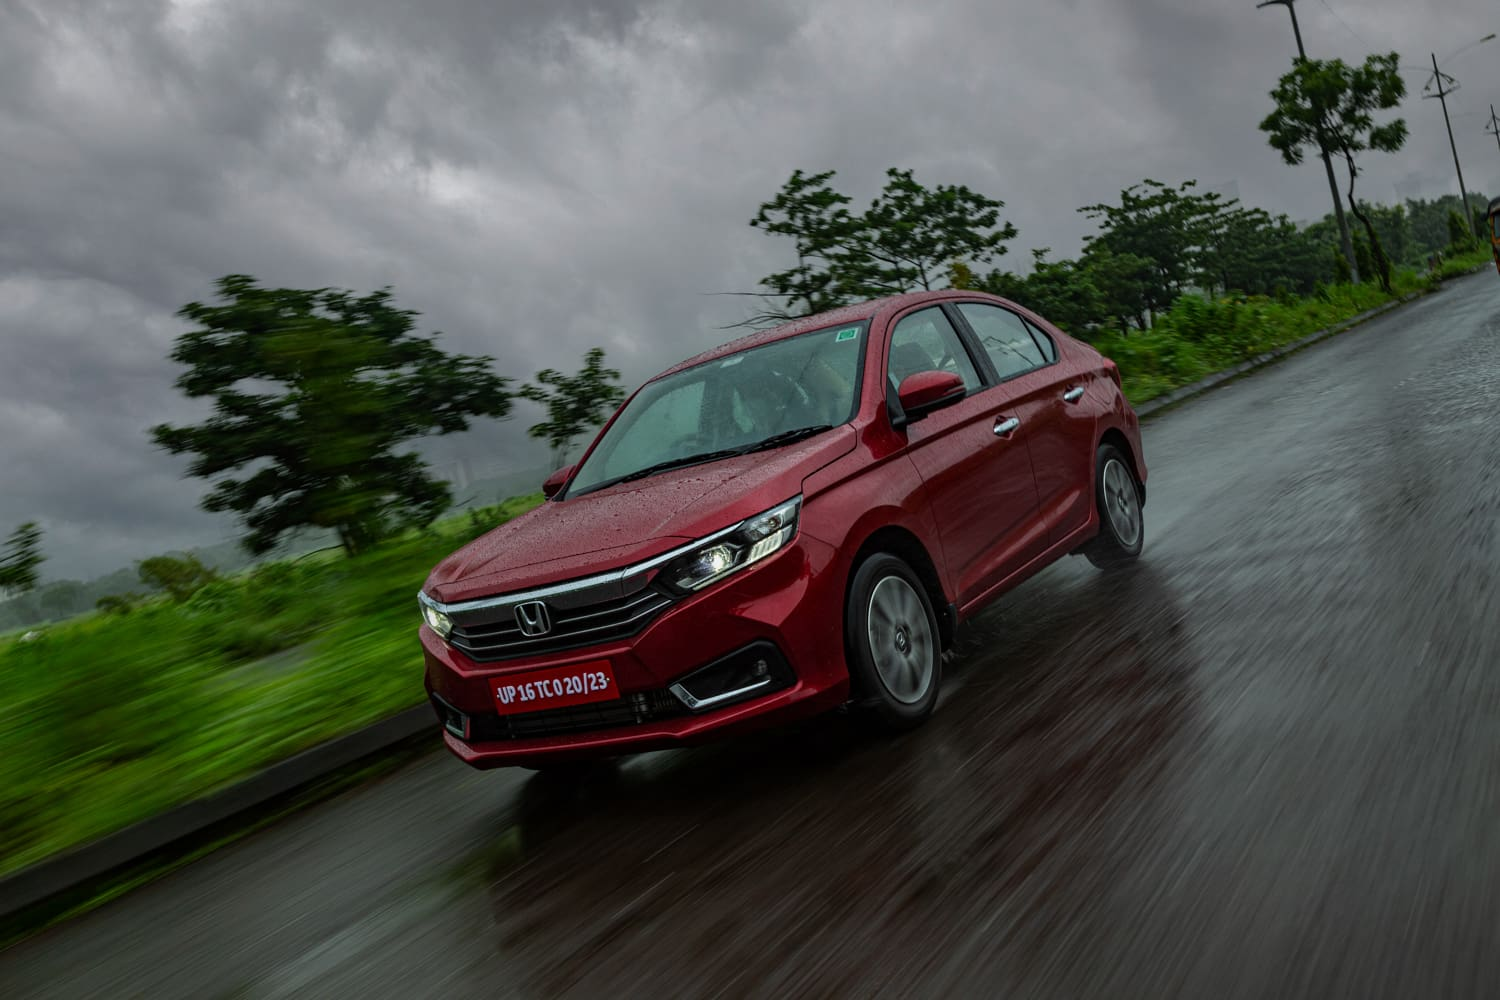 2021 Honda Amaze: First Drive Review